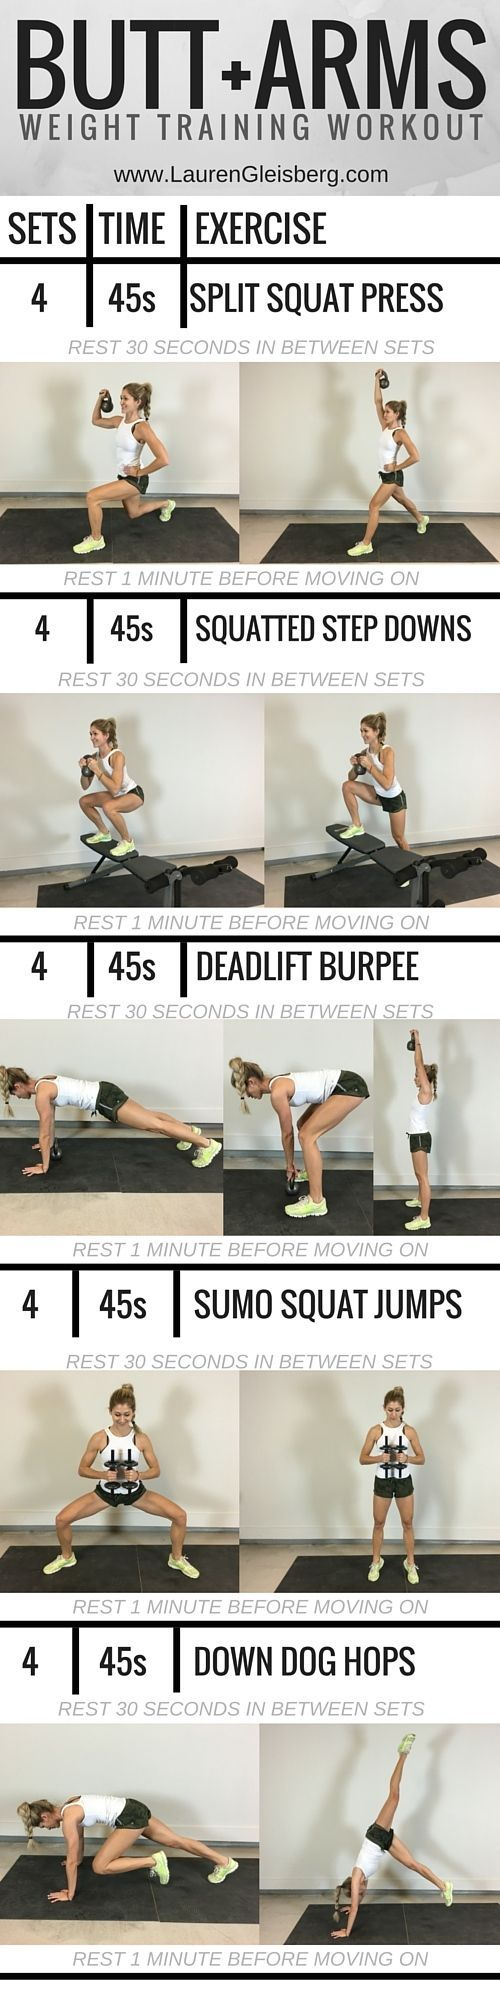 See more here ► https://www.youtube.com/watch?v=__Gi8cvdquw Tags: quick tricks to lose weight, quick weight loss techniques, quick and easy way to lose weight fast - #LGFitAndLean2016 Challenge: Shoulders + Glutes (W5D4) – Lauren Gleisberg